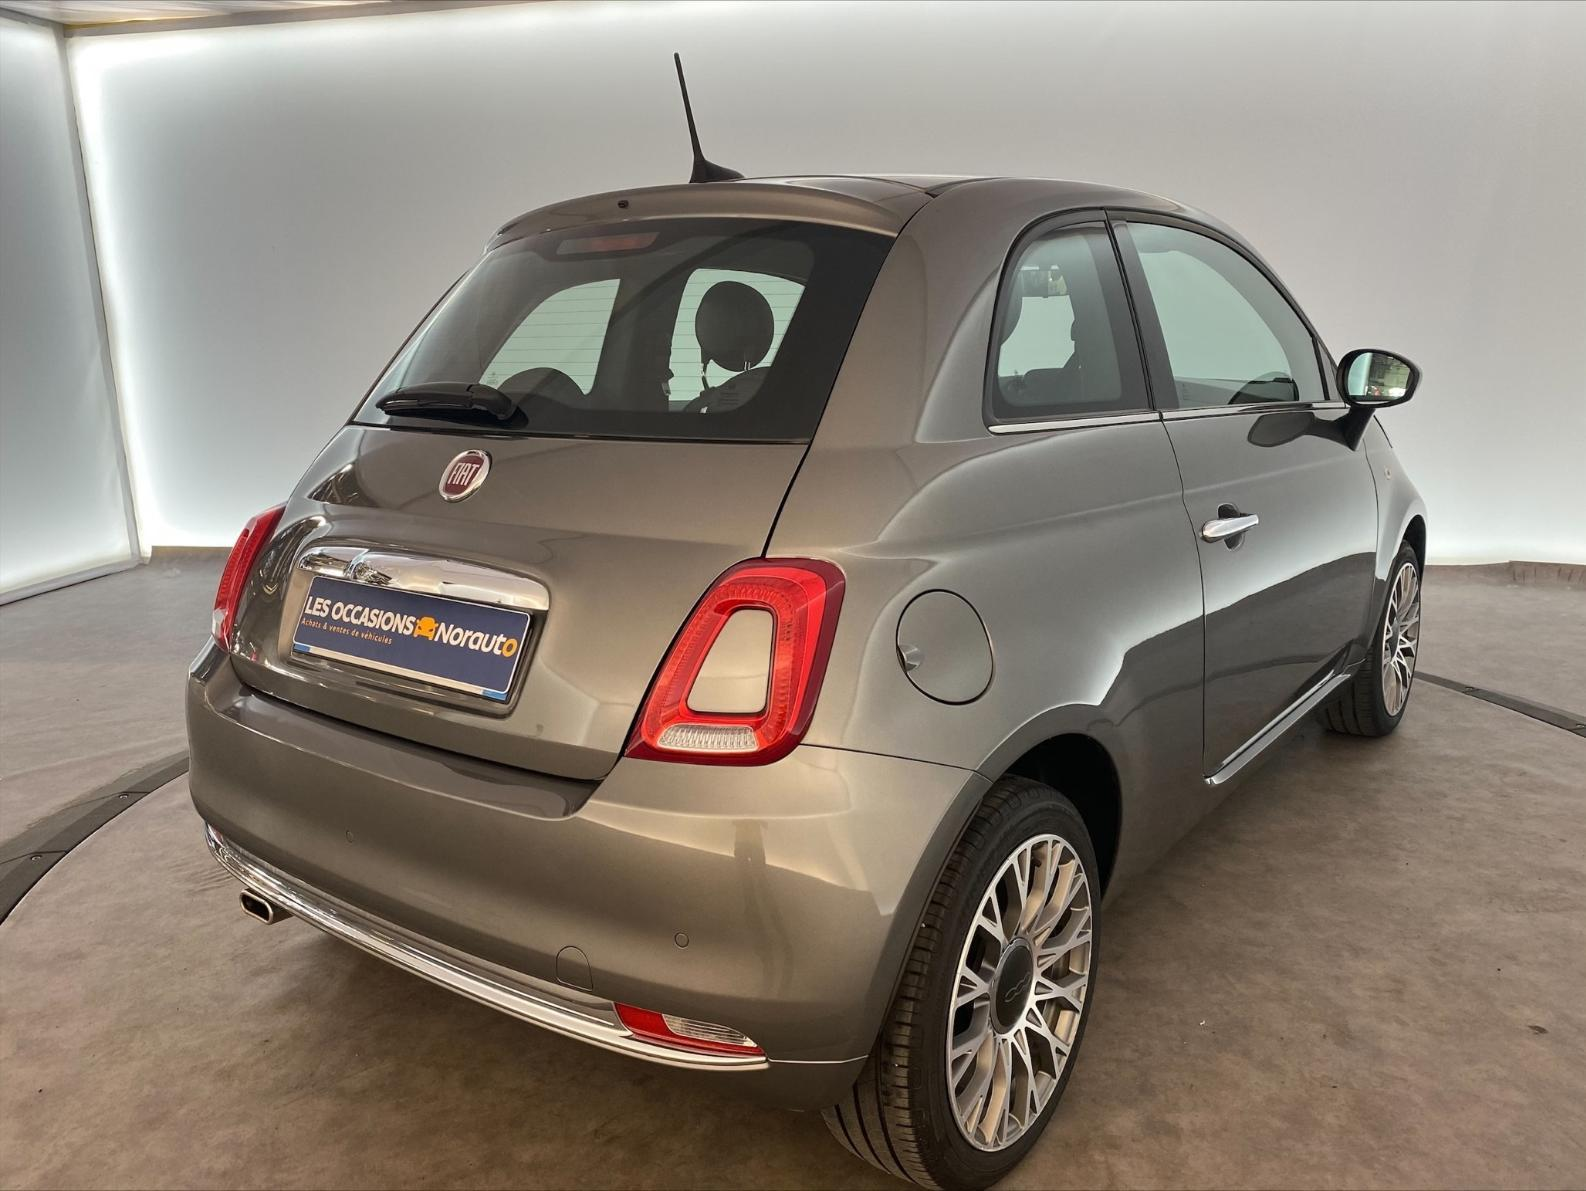 FIAT 500 MY20 SERIE 7 EURO 6D 500 1.2 69 ch Eco Pack S/S Star